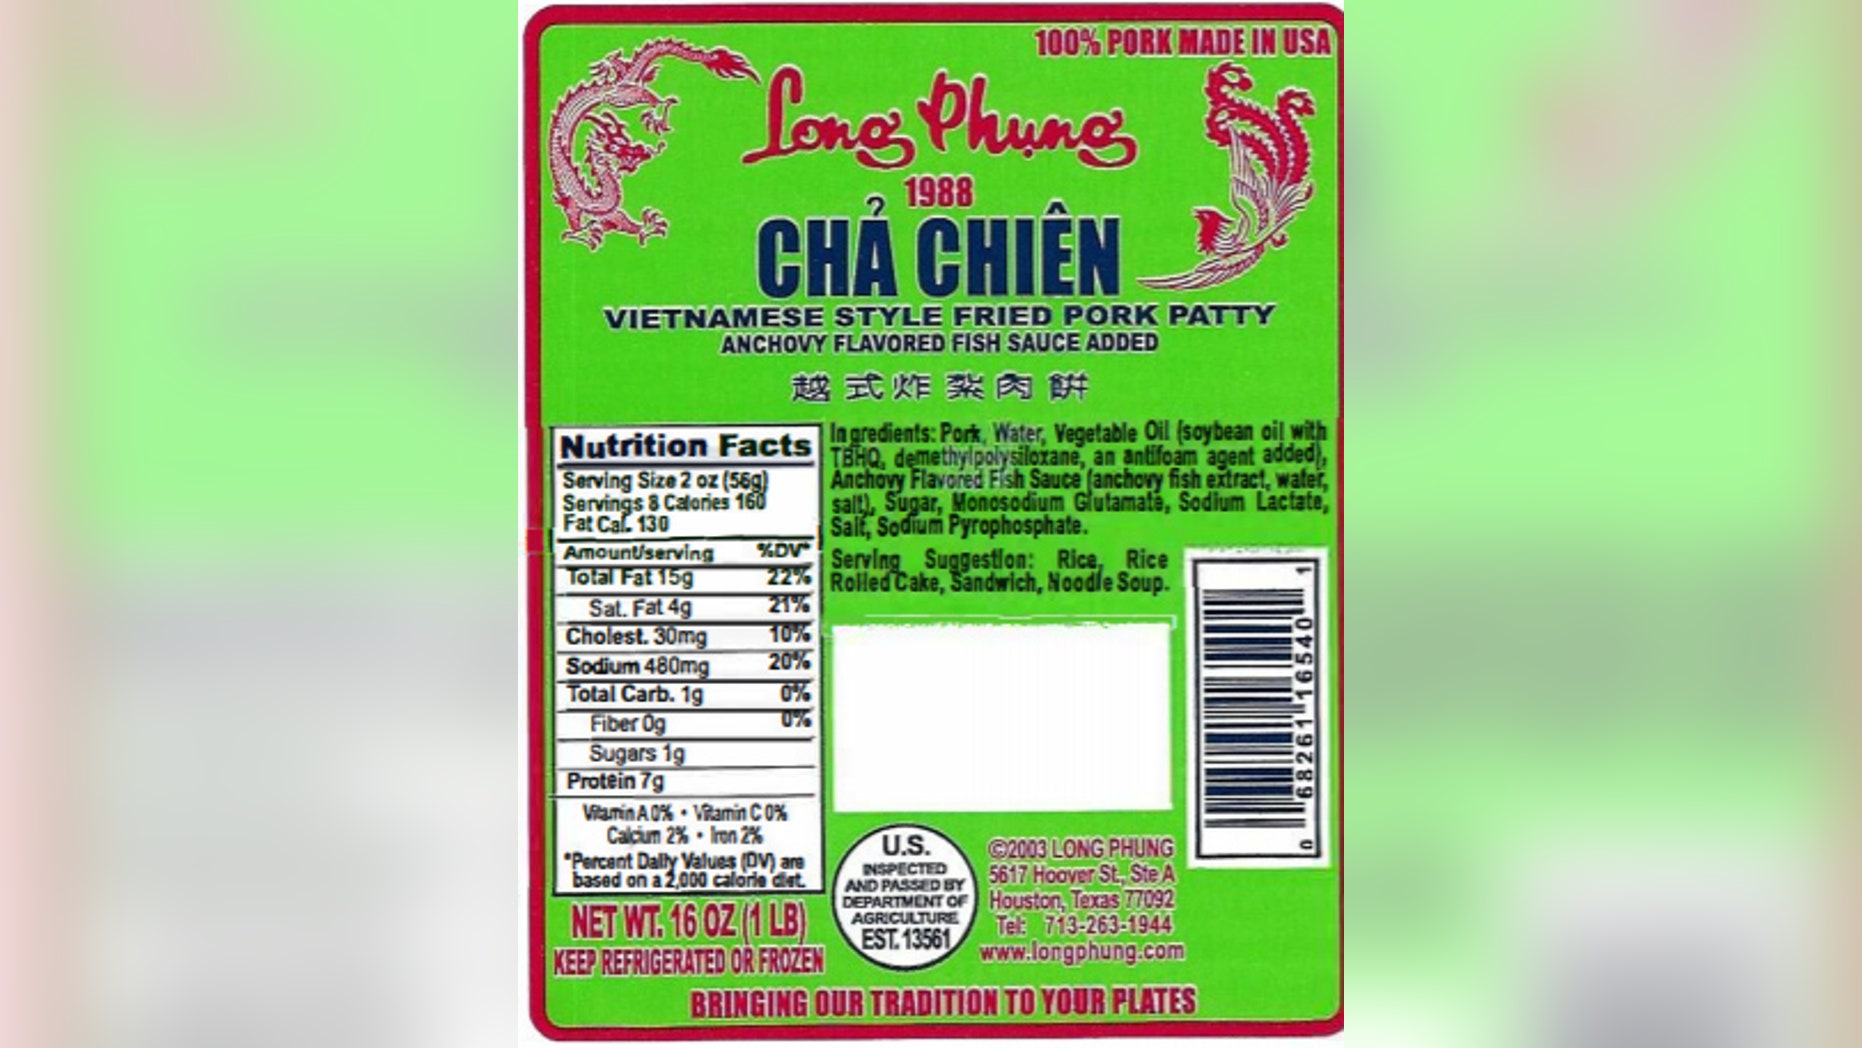 As of Nov. 20, at least four consumers who ate food from stores that also sell Long Phung's anchovy-marinated pork patty rolls were sickened and required hospitalization.